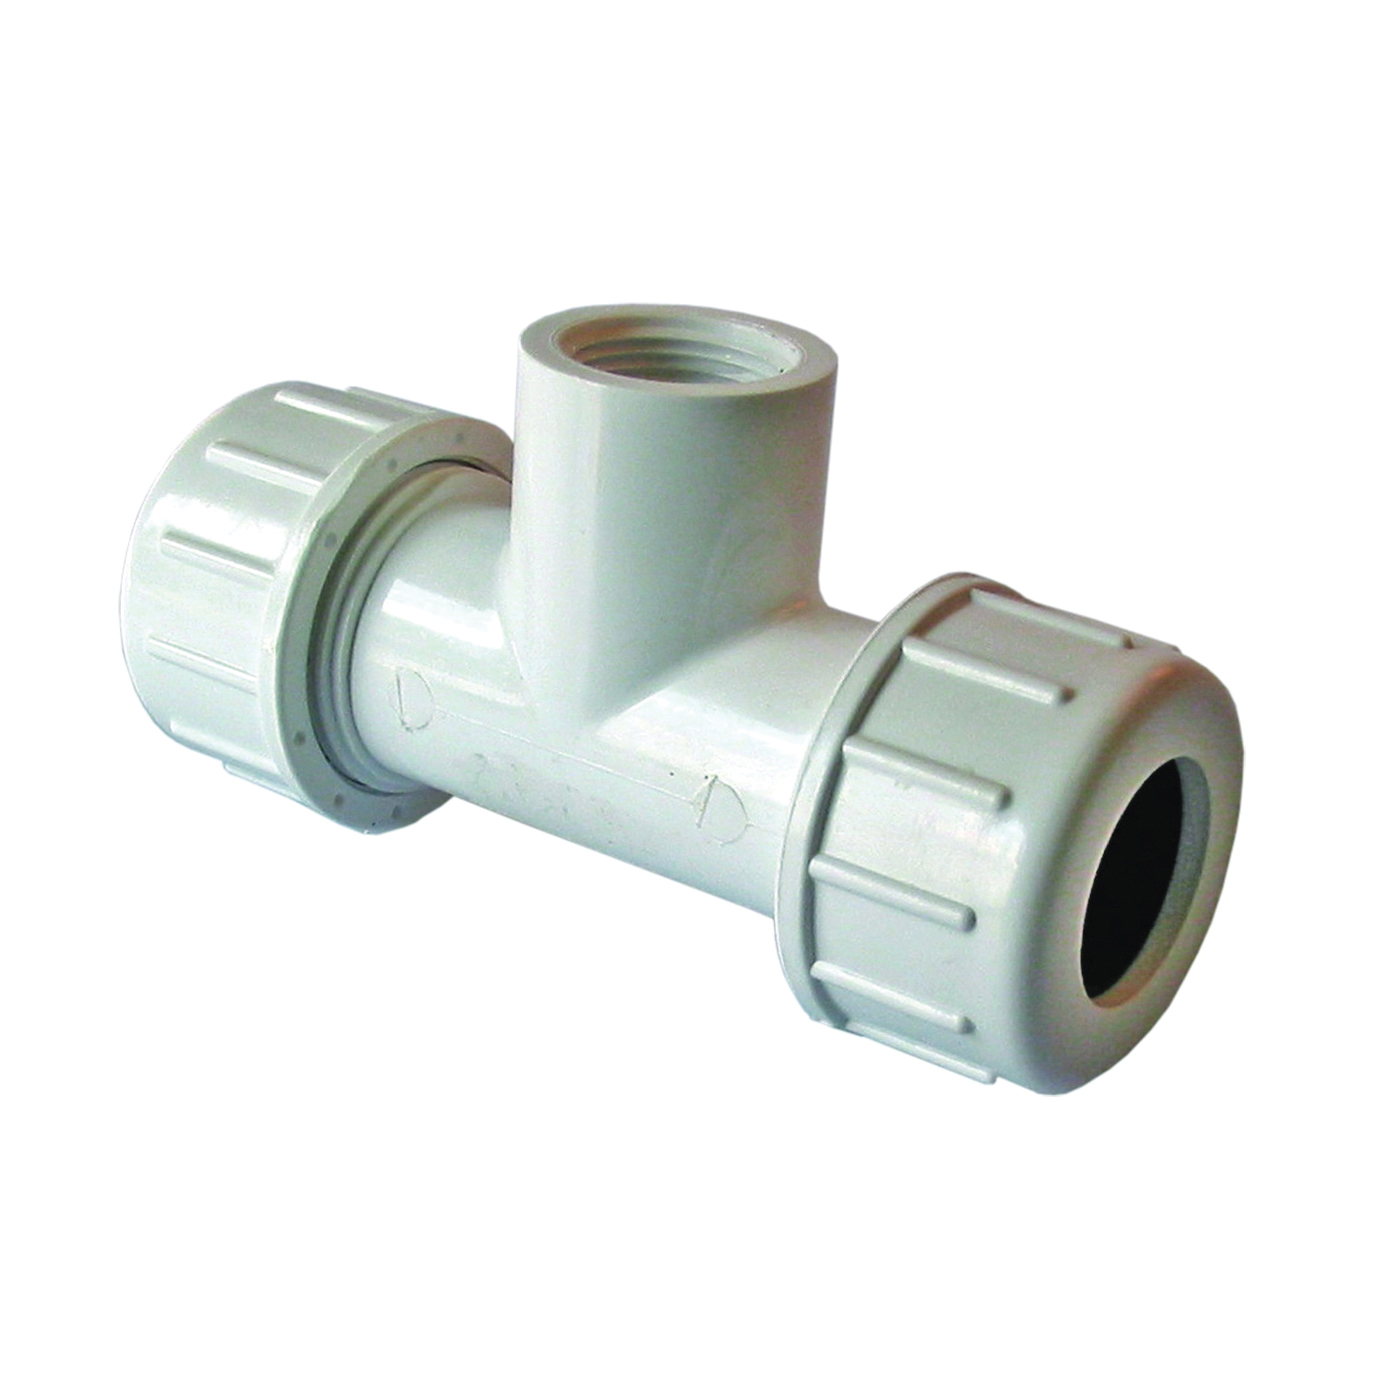 Picture of AMERICAN VALVE P230 3/4 Pipe Tee, 3/4 in Run, Compression x Compression x Female NPT Run Connection, 3/4 in Branch